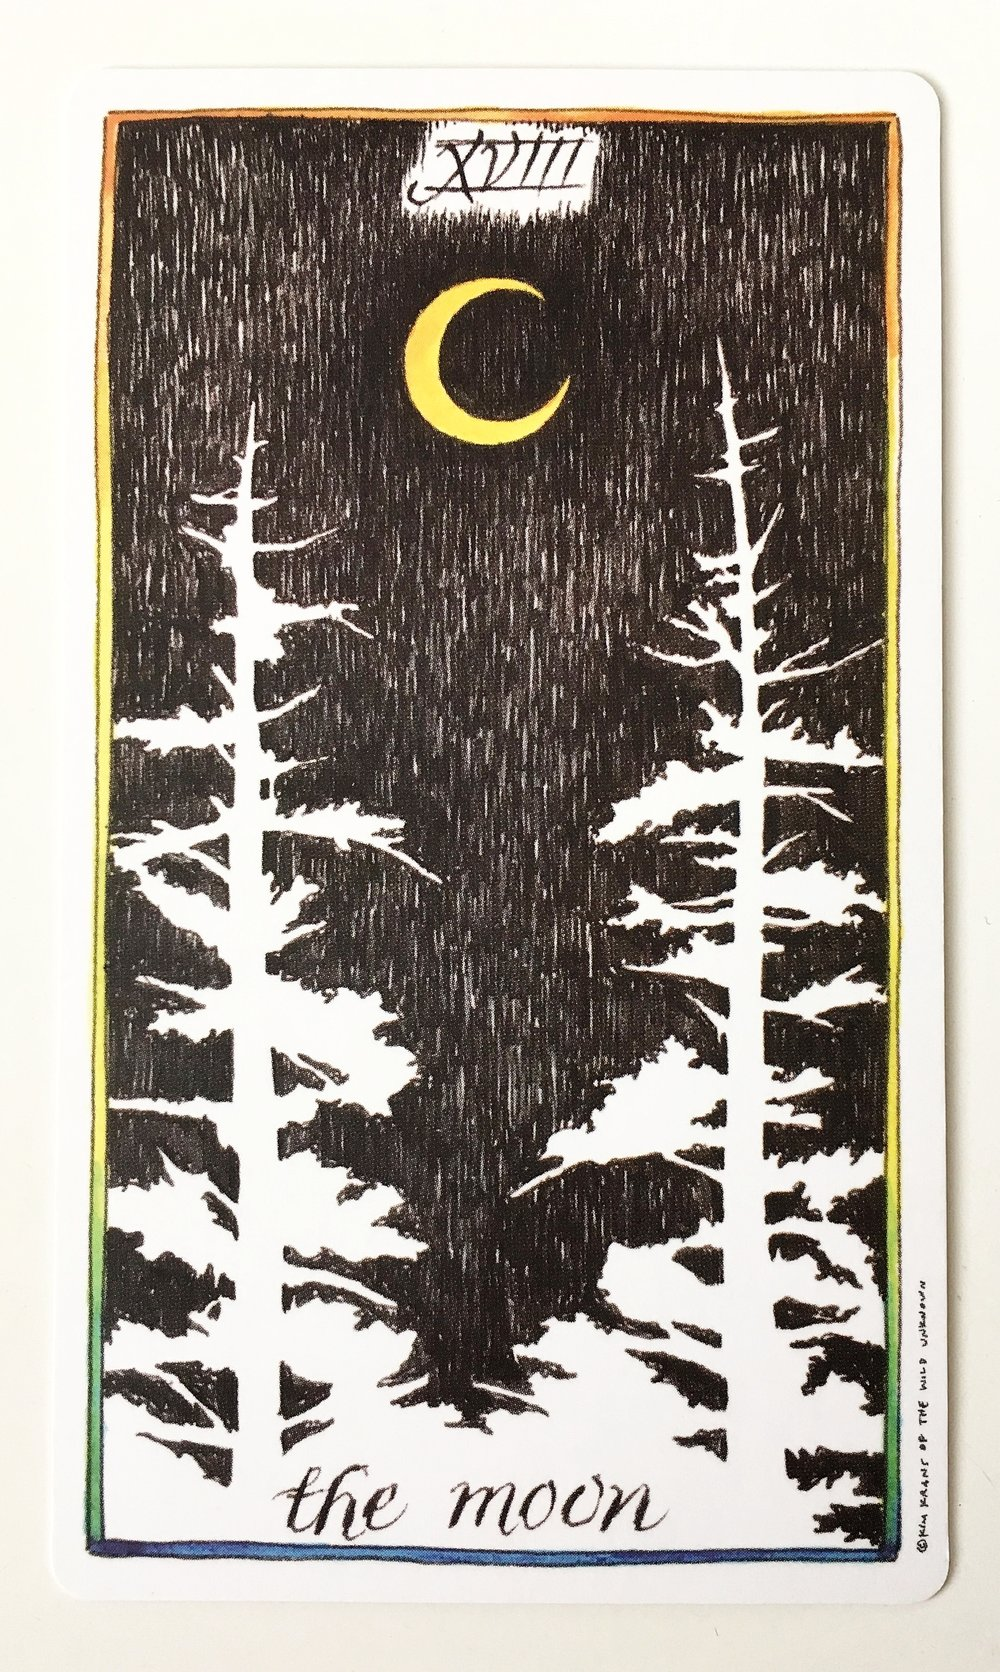 The Moon from The Wild Unknown Tarot Deck, art by Kim Krans.